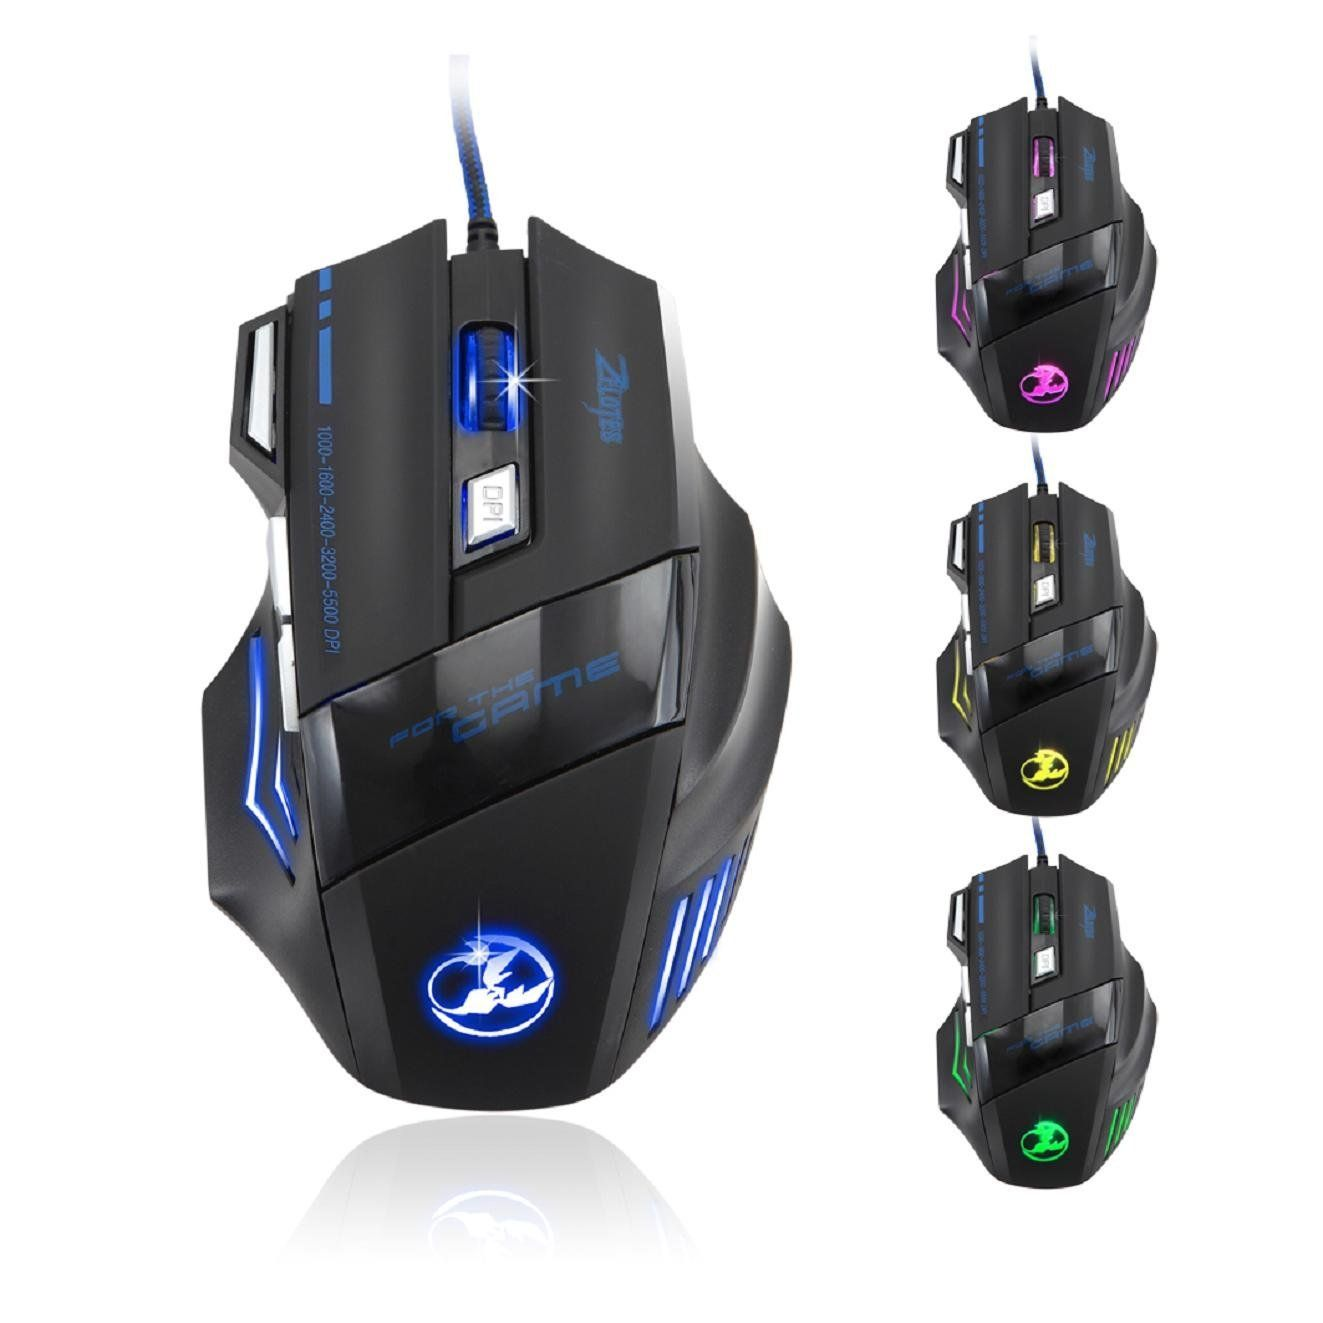 7 Buttons Adjustable DPI Ergonomic Professional Gaming Mouse